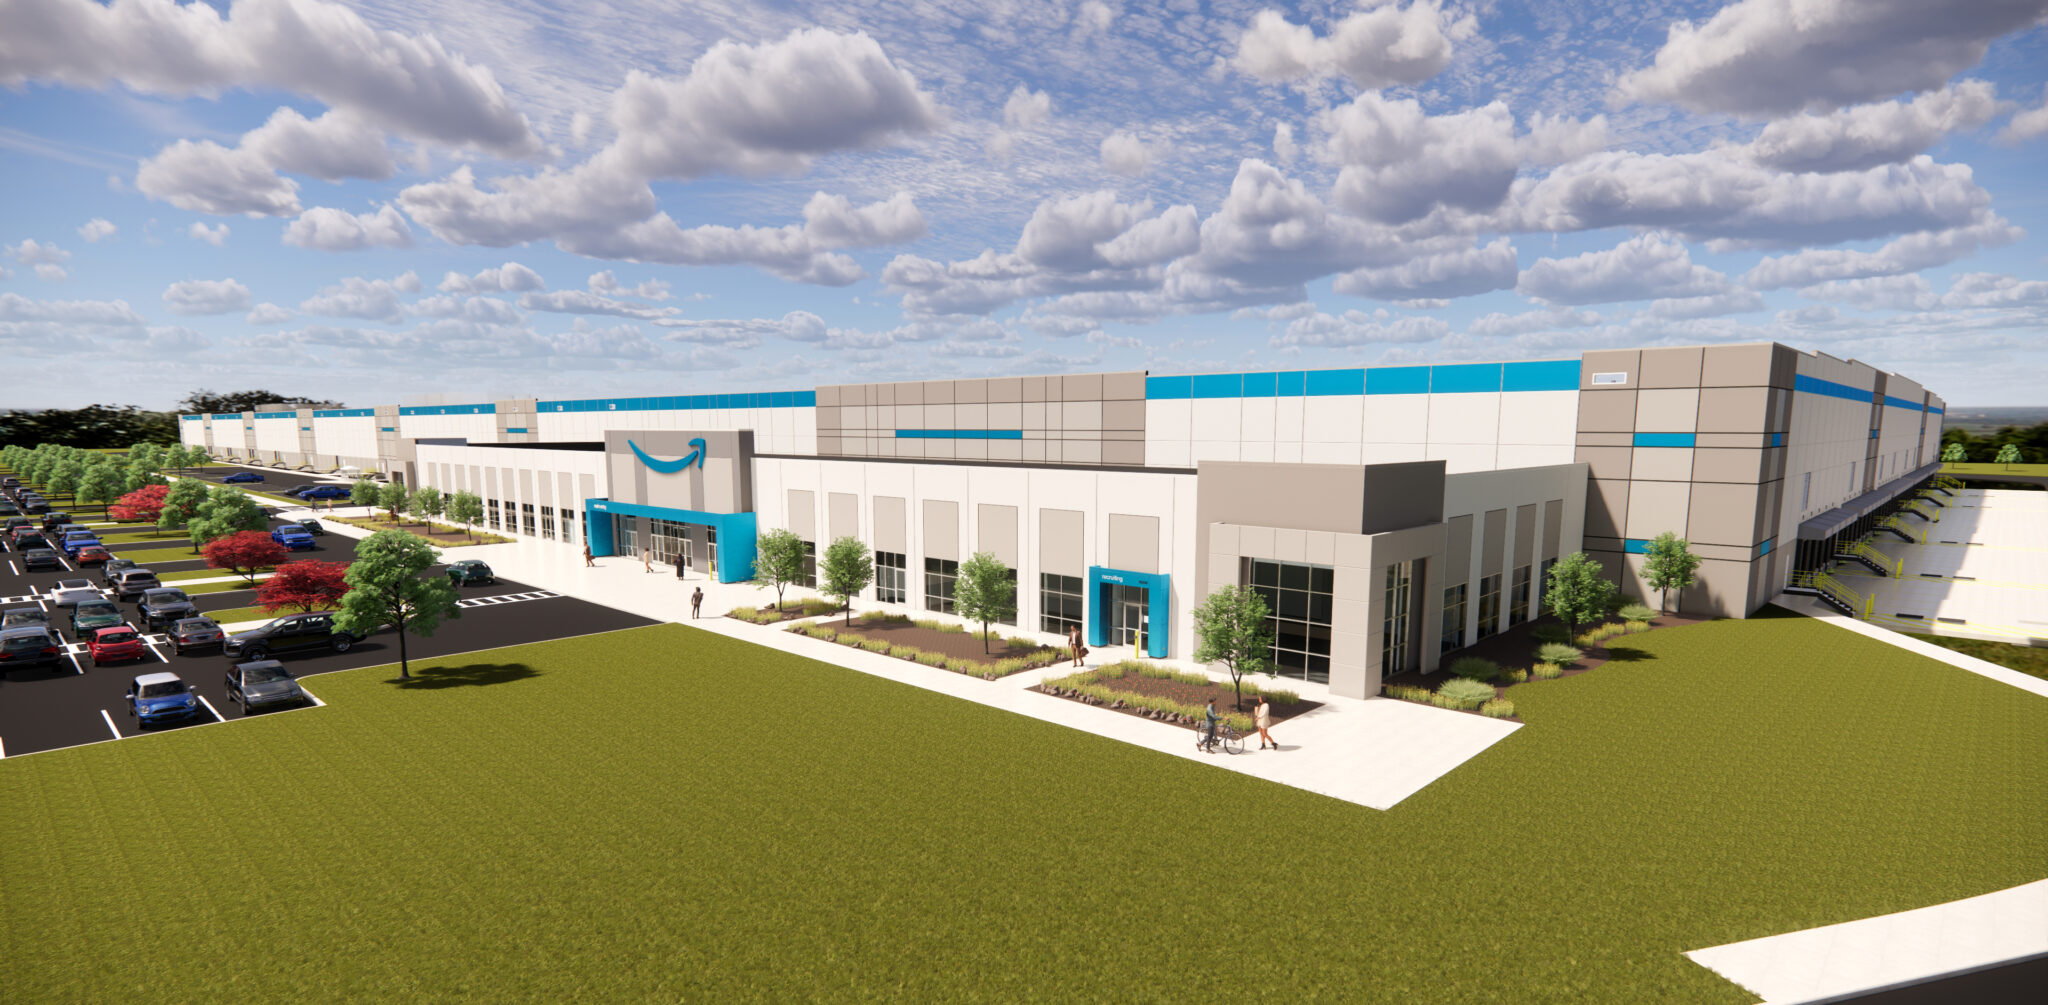 Rendering of Amazon fulfillment center coming to Delta Township, Michigan in 2022